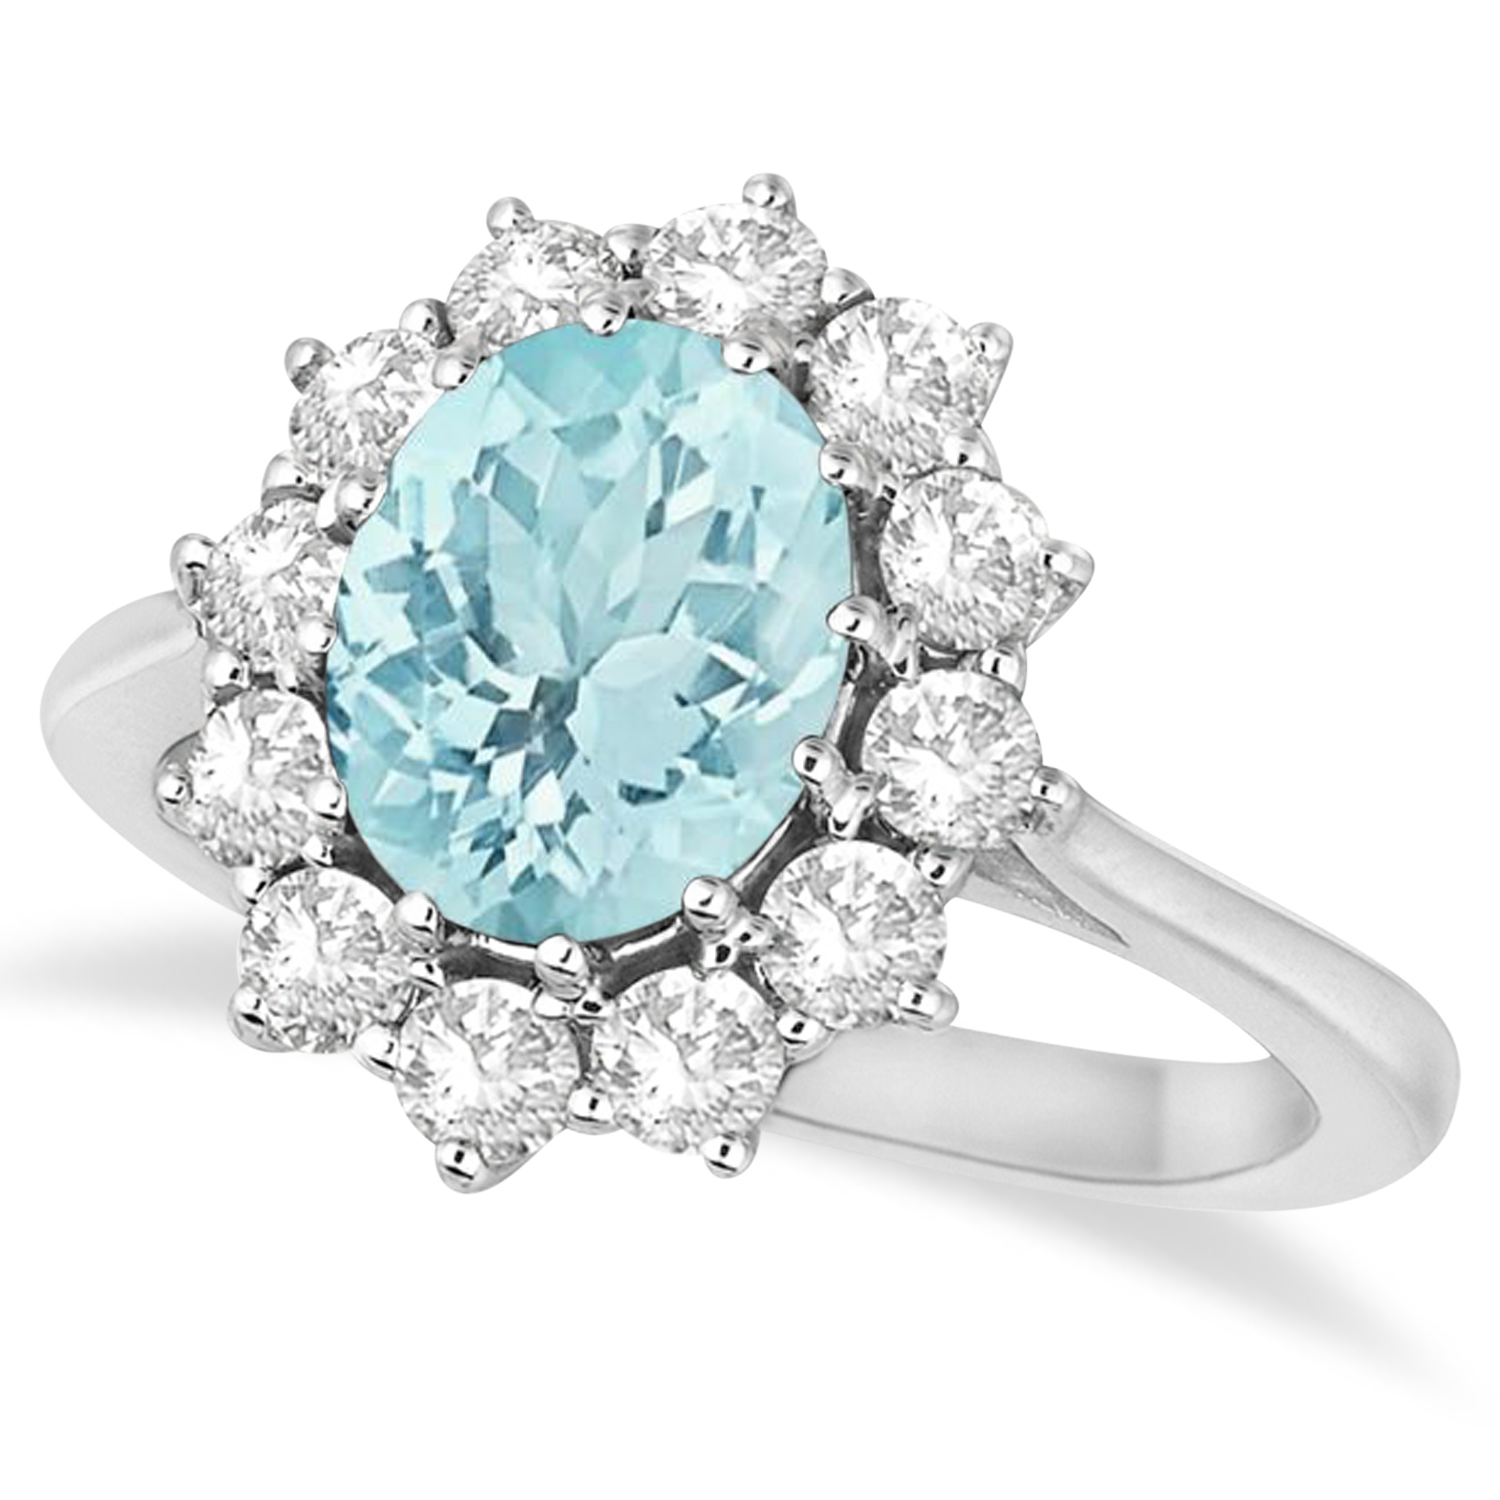 Oval Aquamarine & Diamond Accented Ring 14k White Gold 3